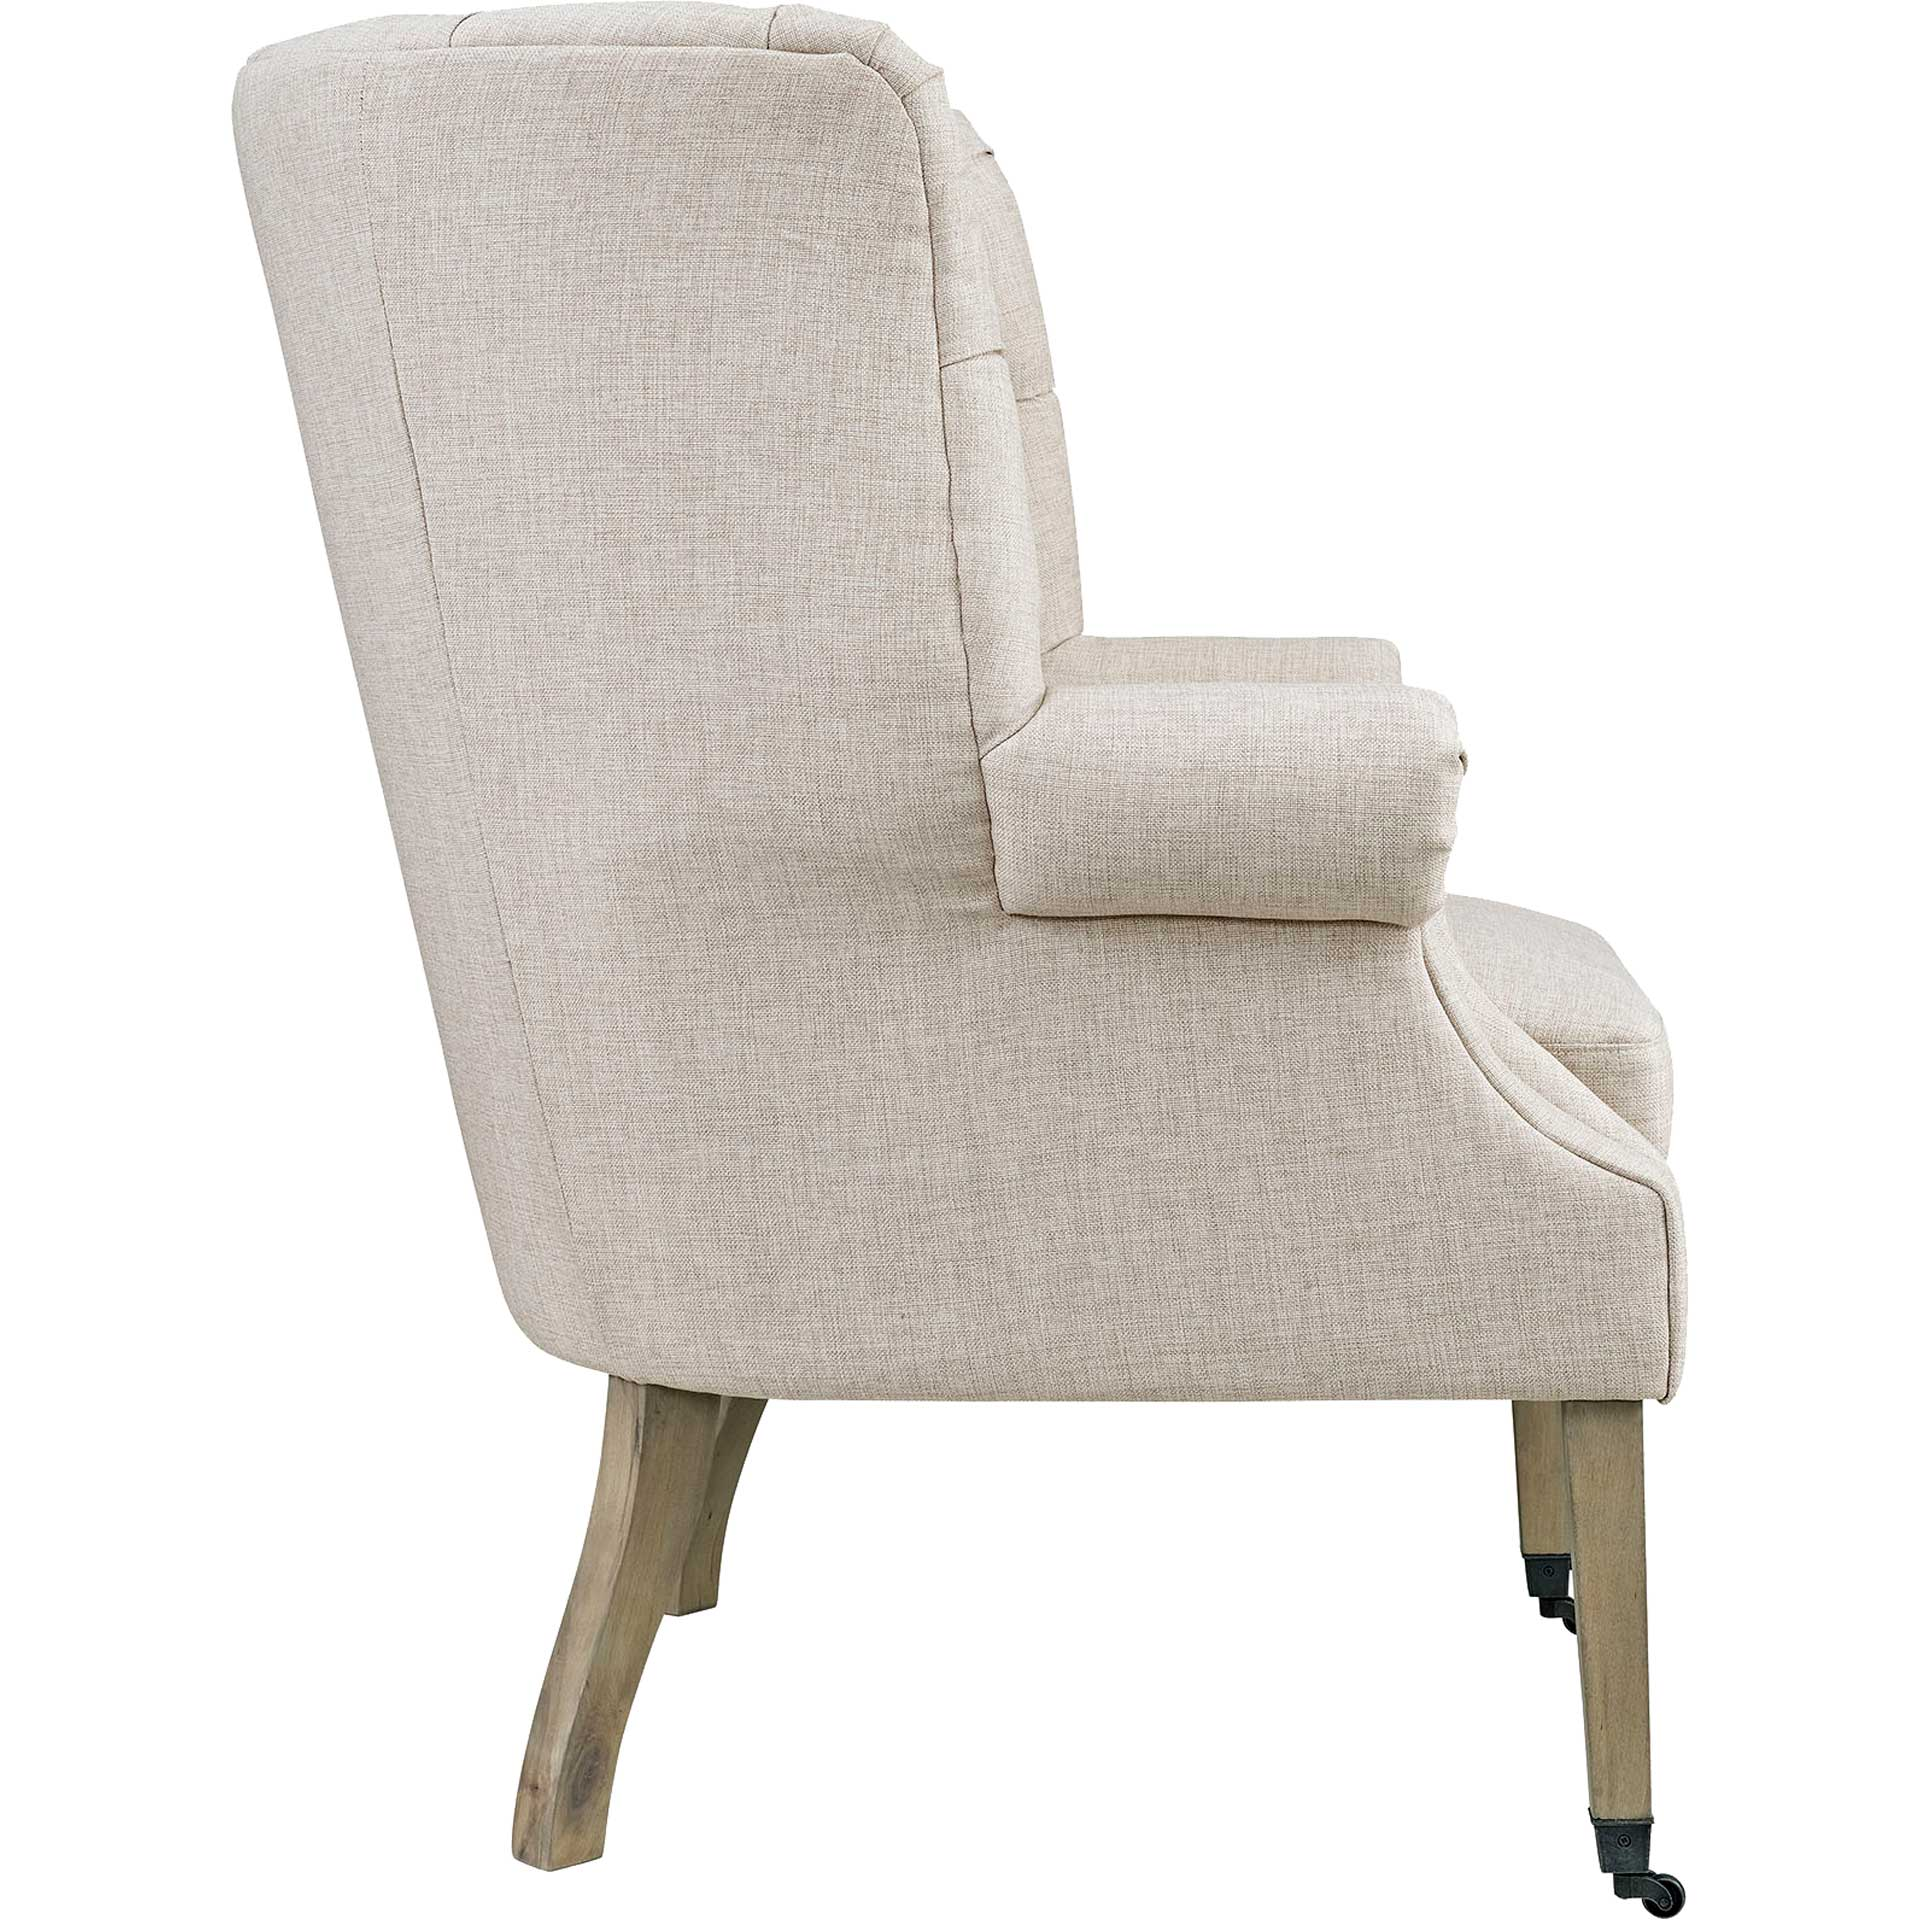 Camron Upholstered Fabric Lounge Chair Sand